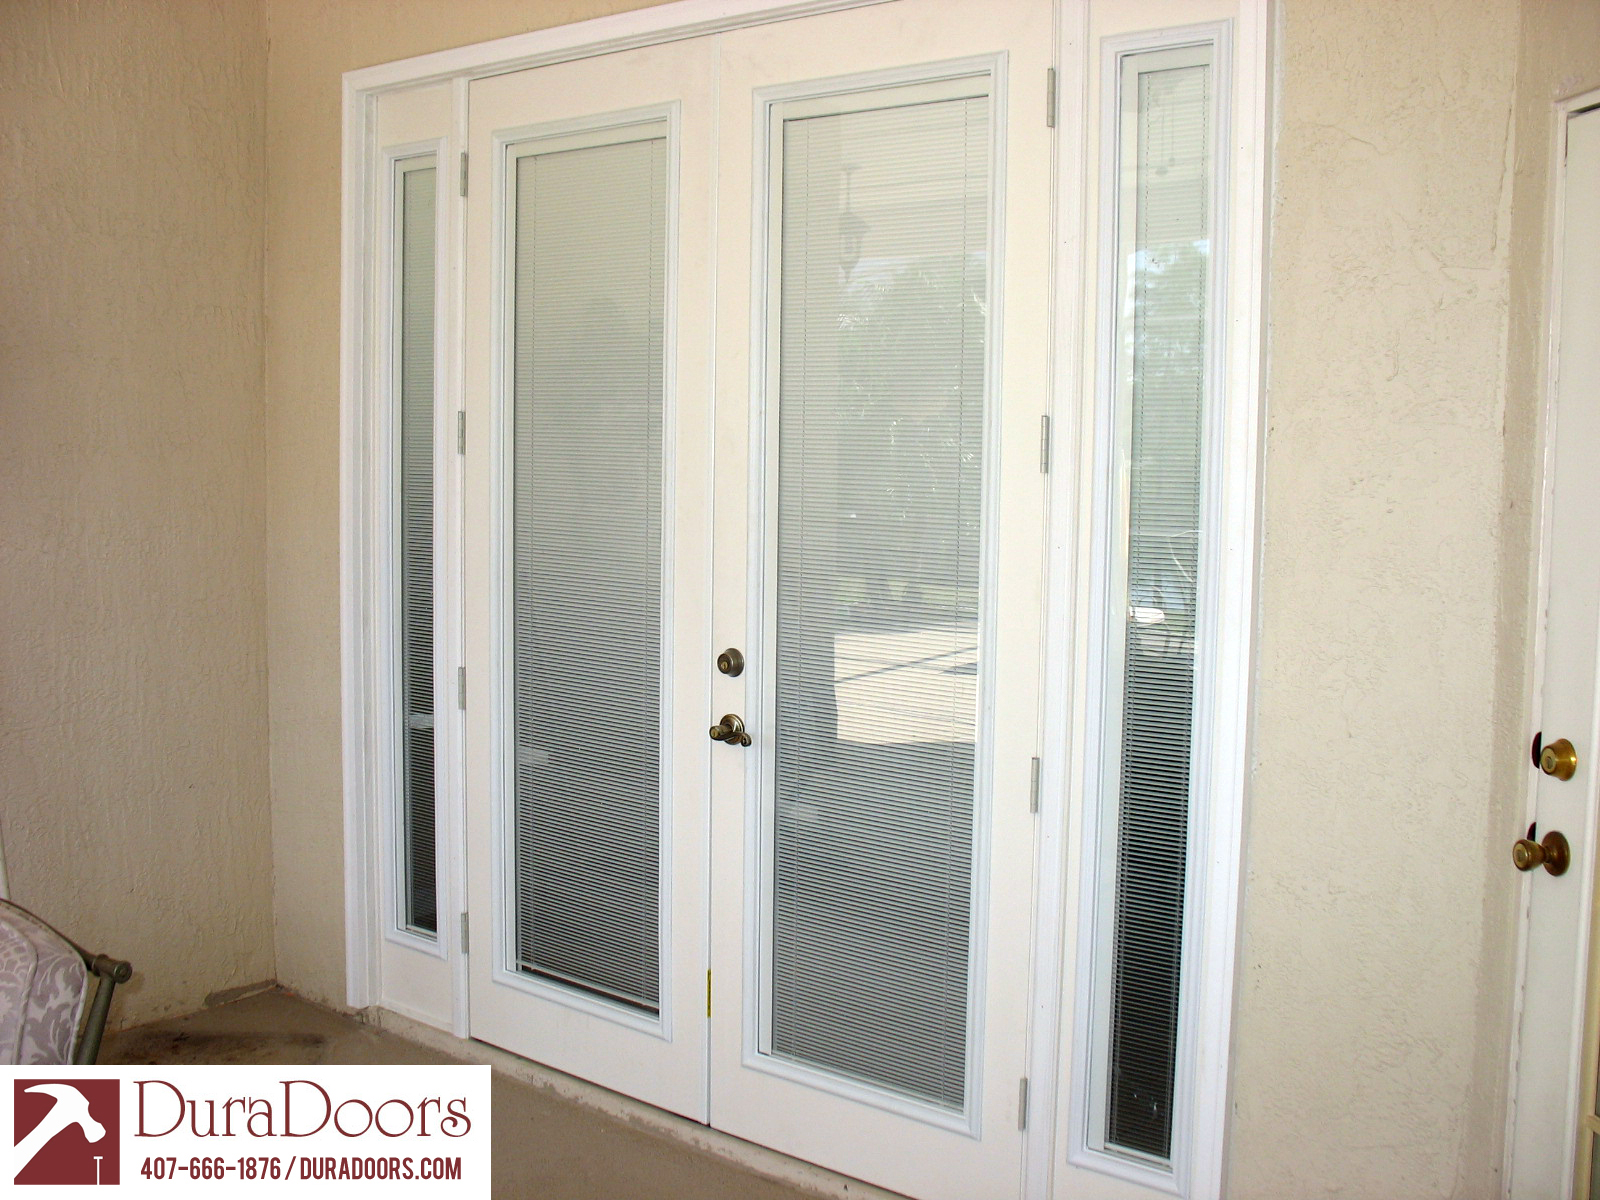 doors door exterior woodgrain blinds smooth x in glass on patio interior and hand add with between p right sliding mp built white composite